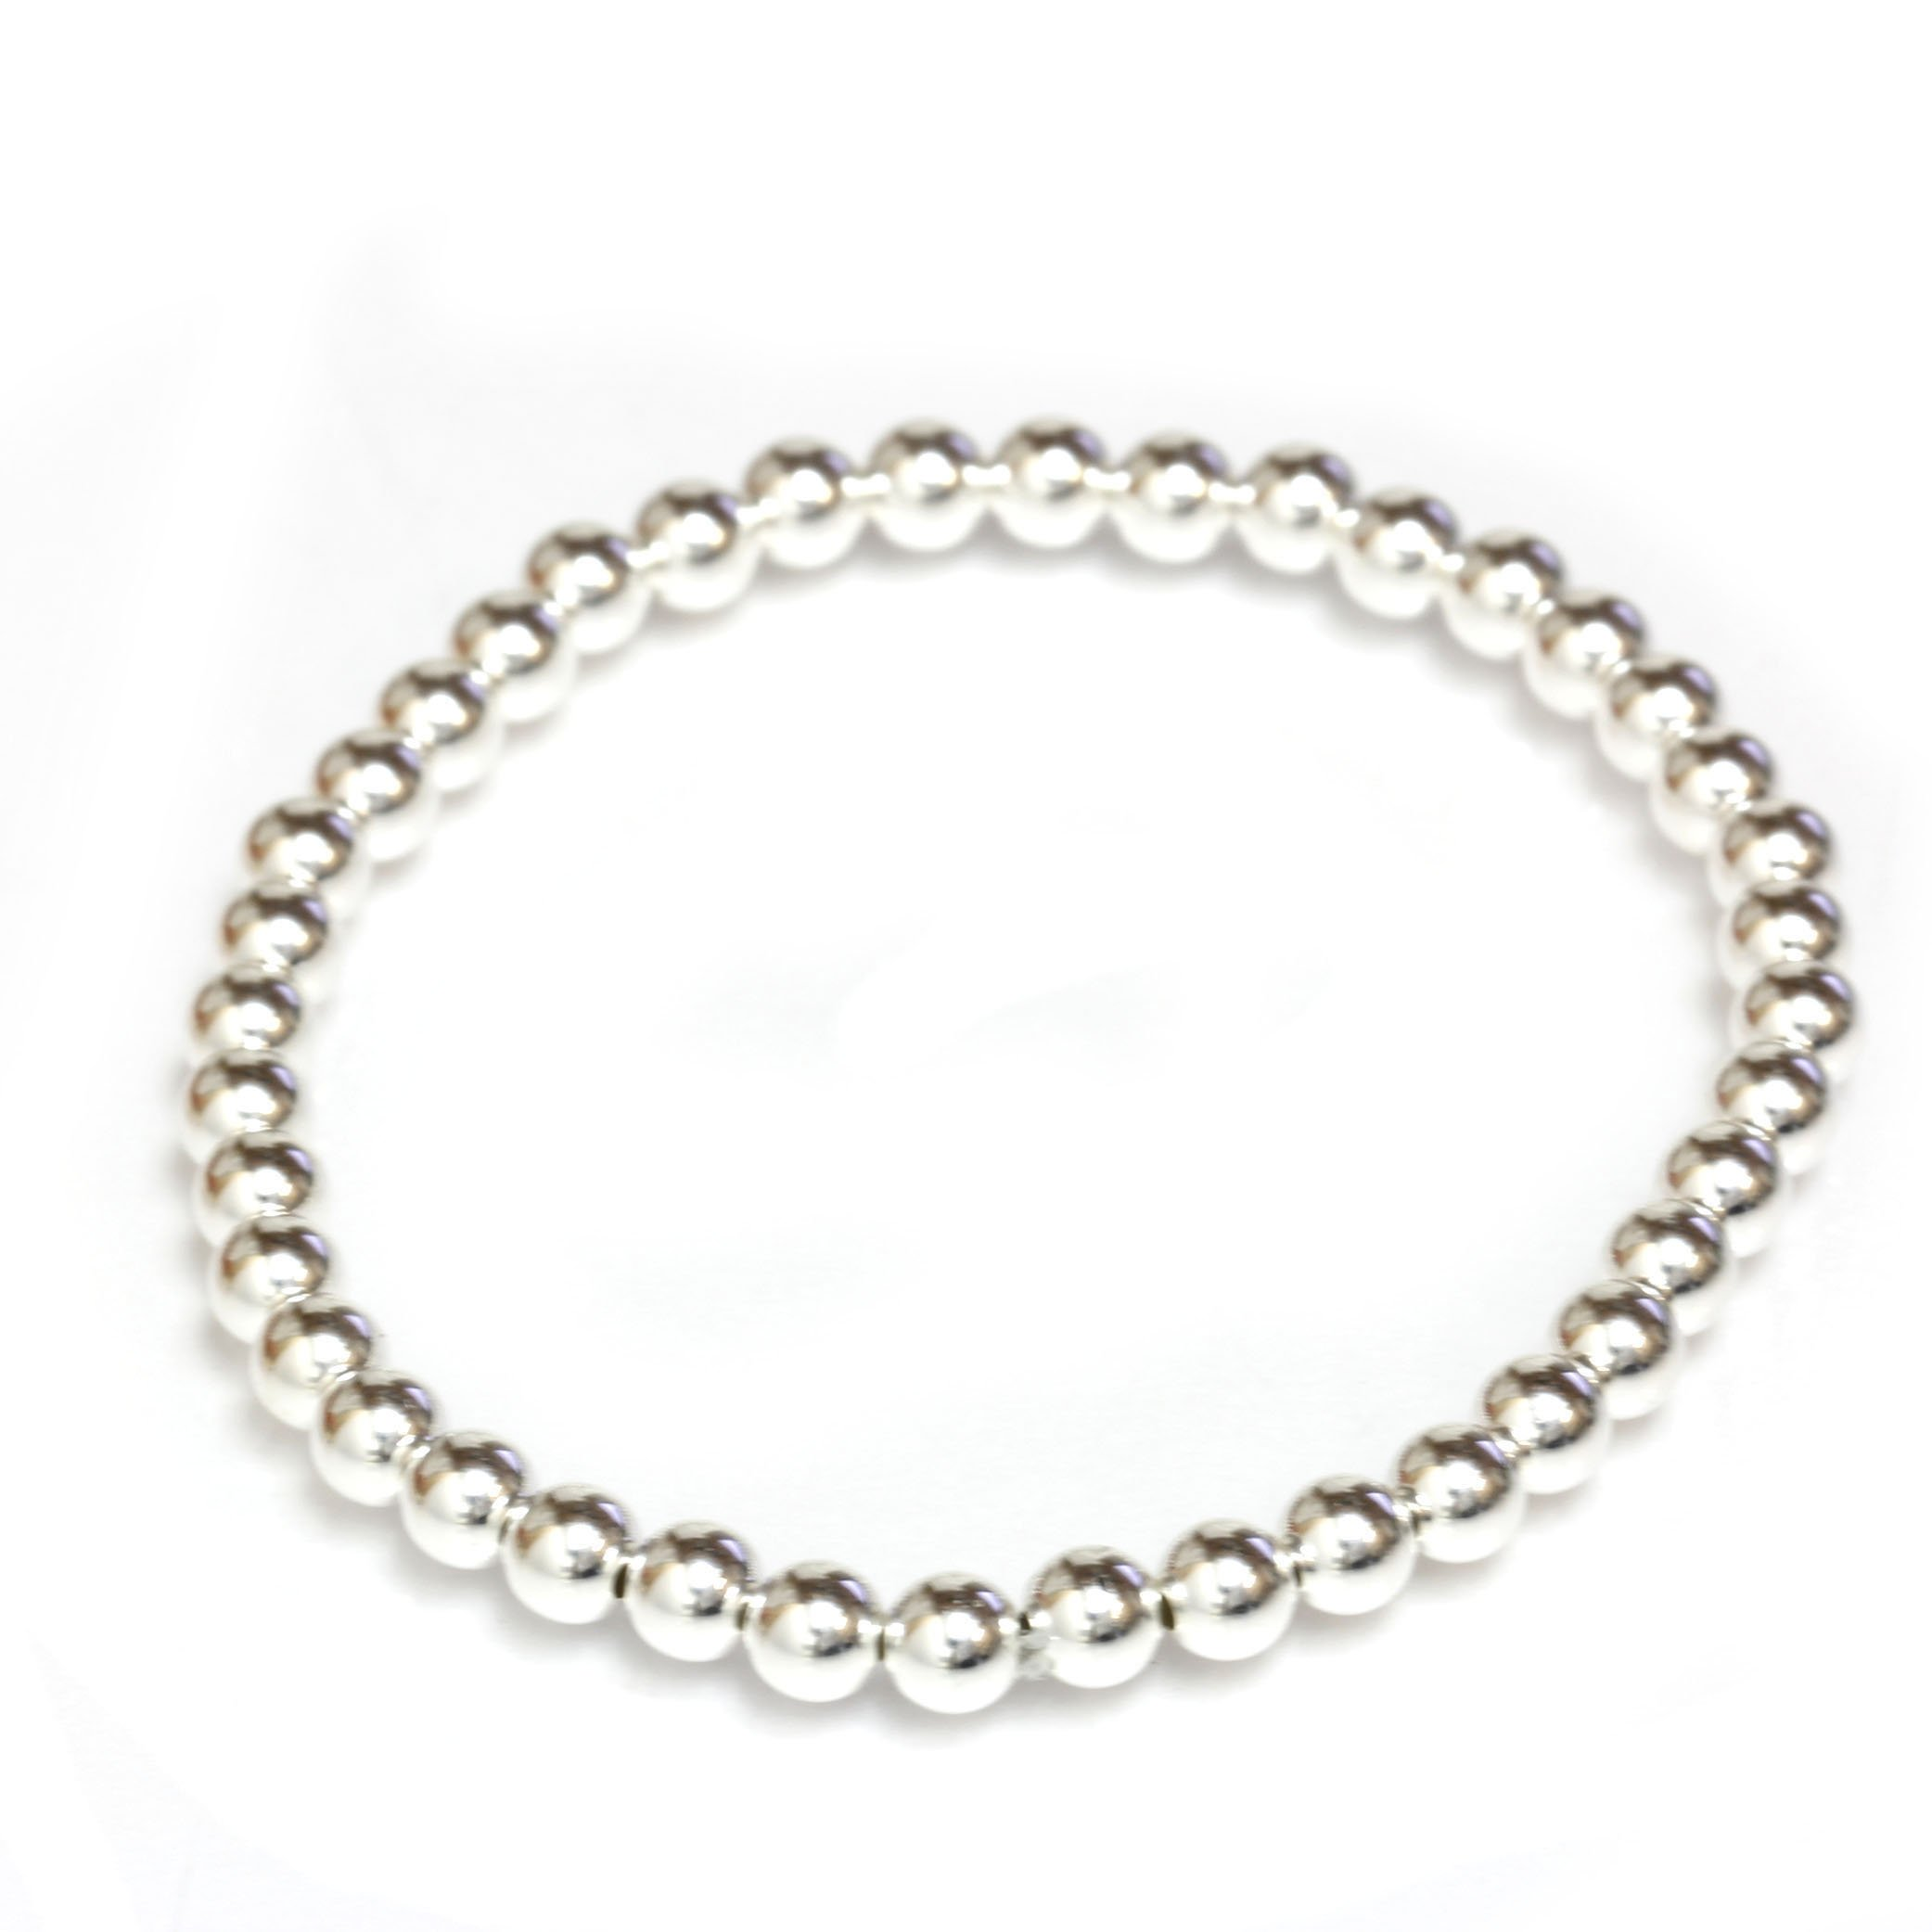 Bead Stretch Elastic Bracelet 14k Gold Yellow, White and Rose, Easy Slid On (7.5, white-gold)